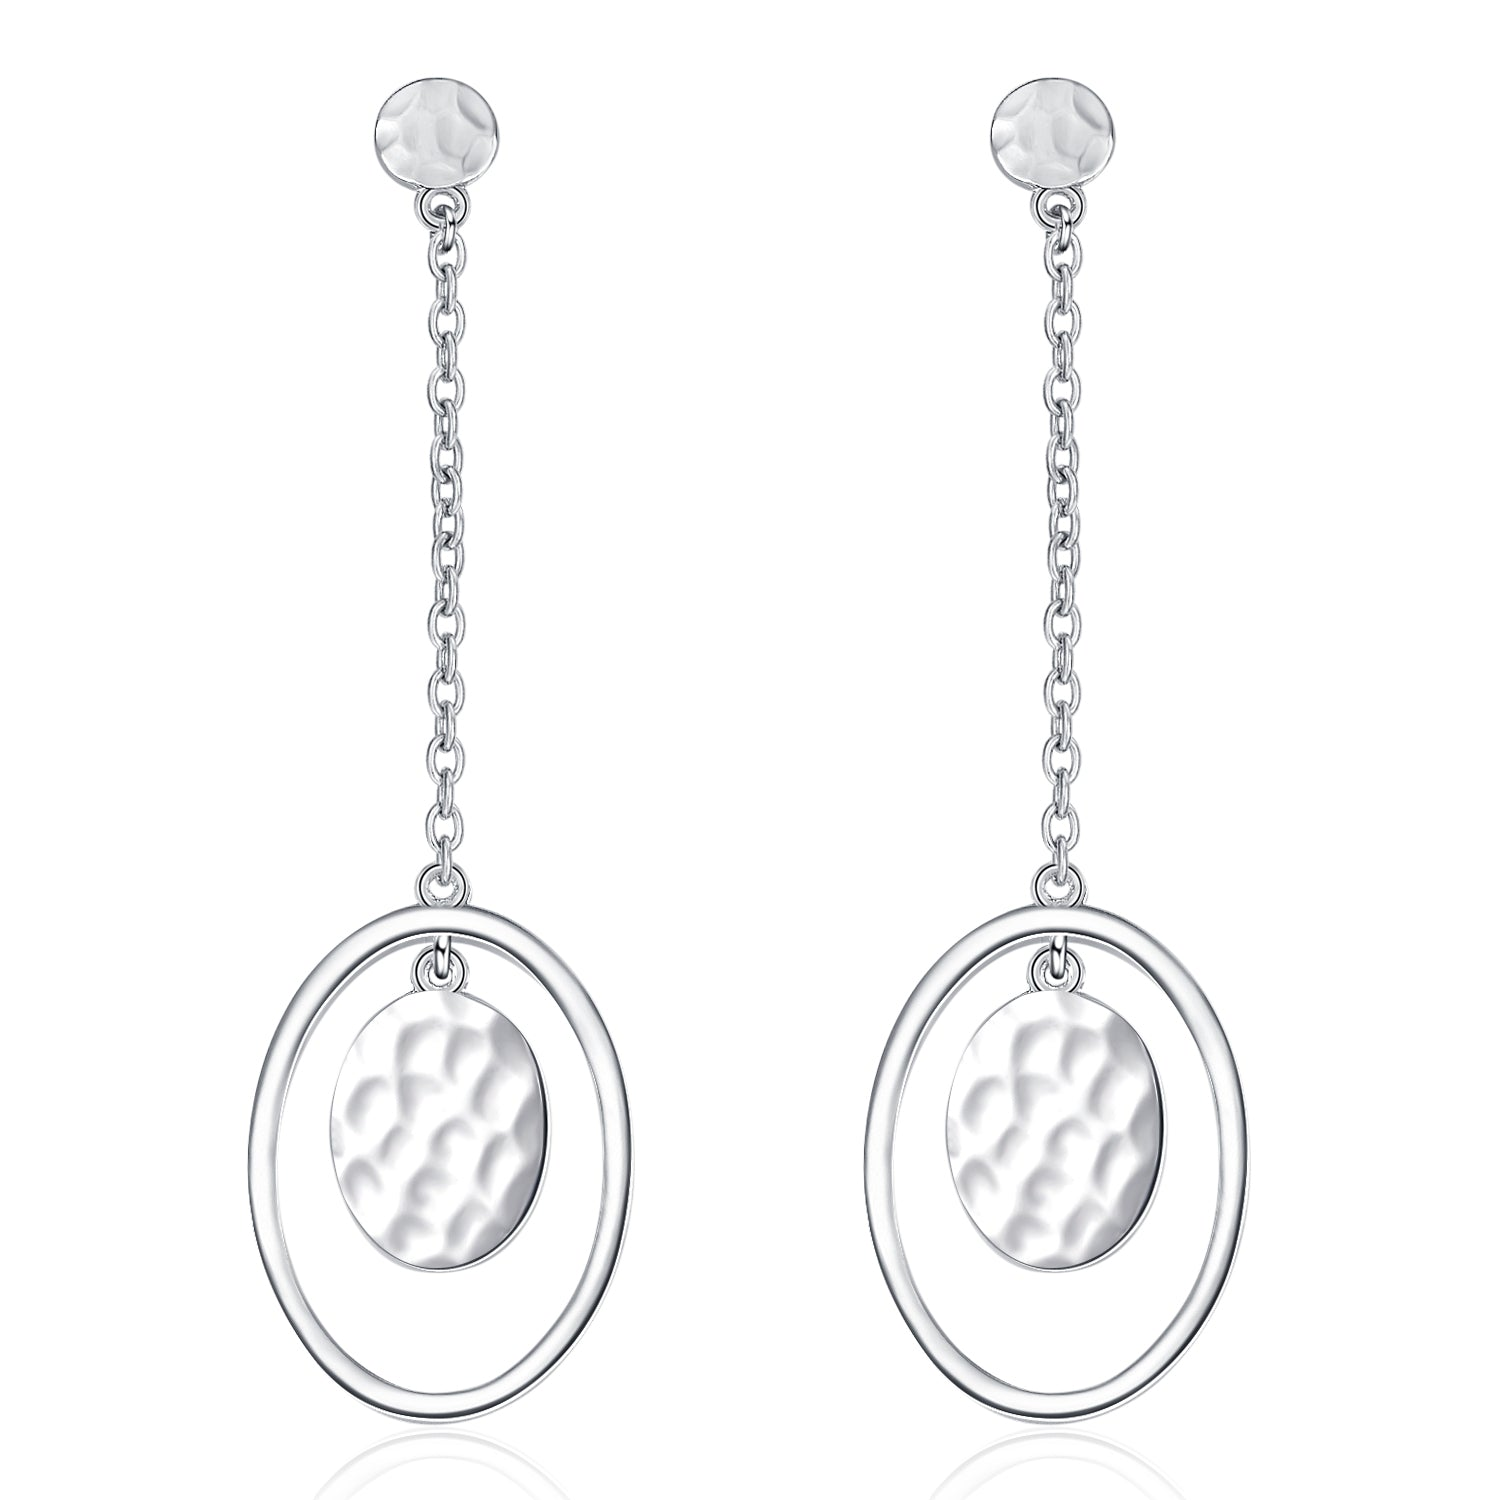 Bump Oval Eardrop Dangle Earrings Long Pendant Silver Earrings